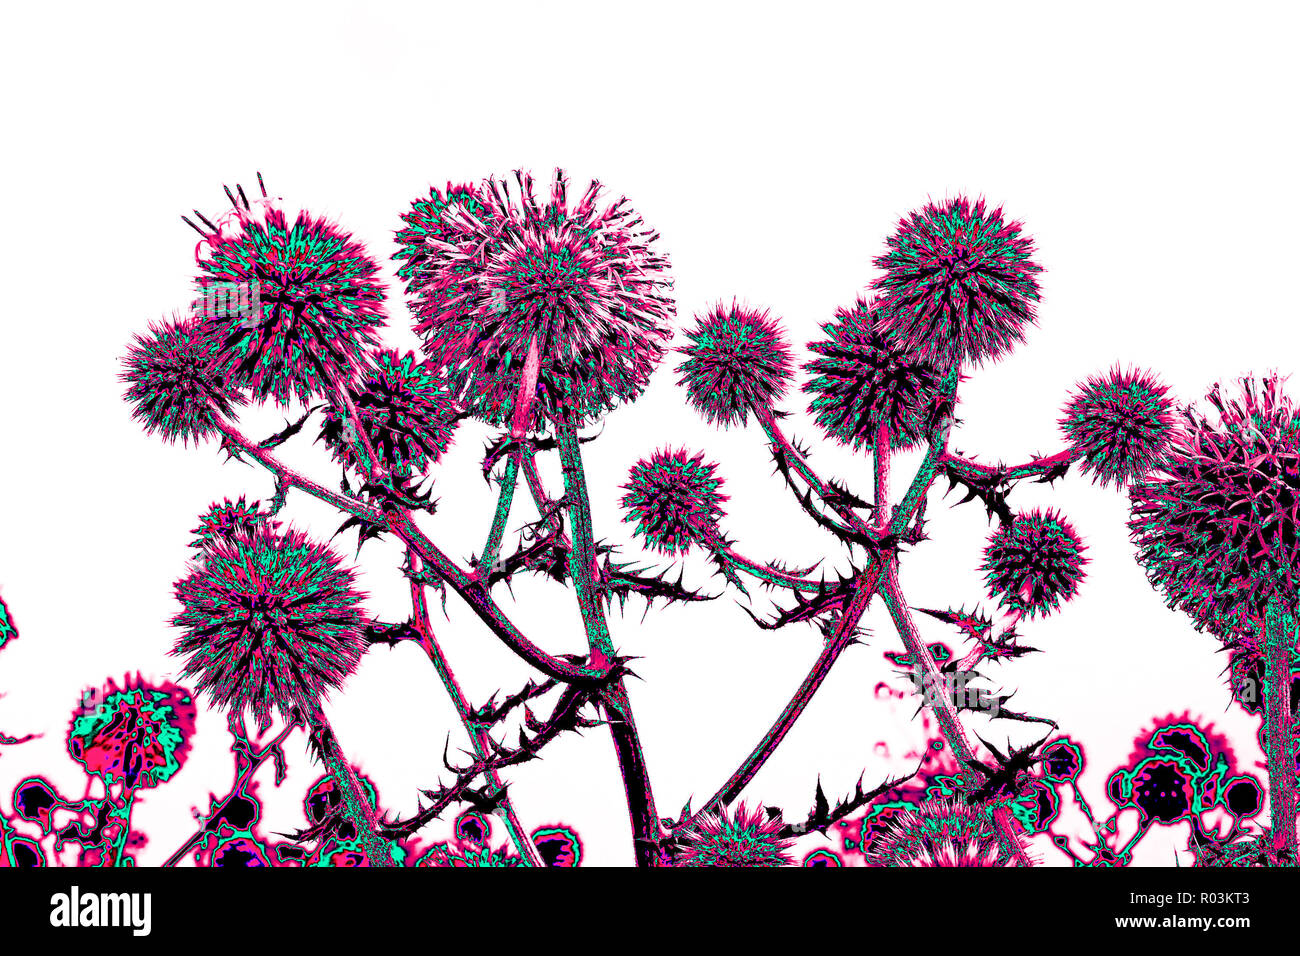 Spherical thistle flowers (Echinops ritro) on the black background. Toned herbal texture in bright colors - Stock Image